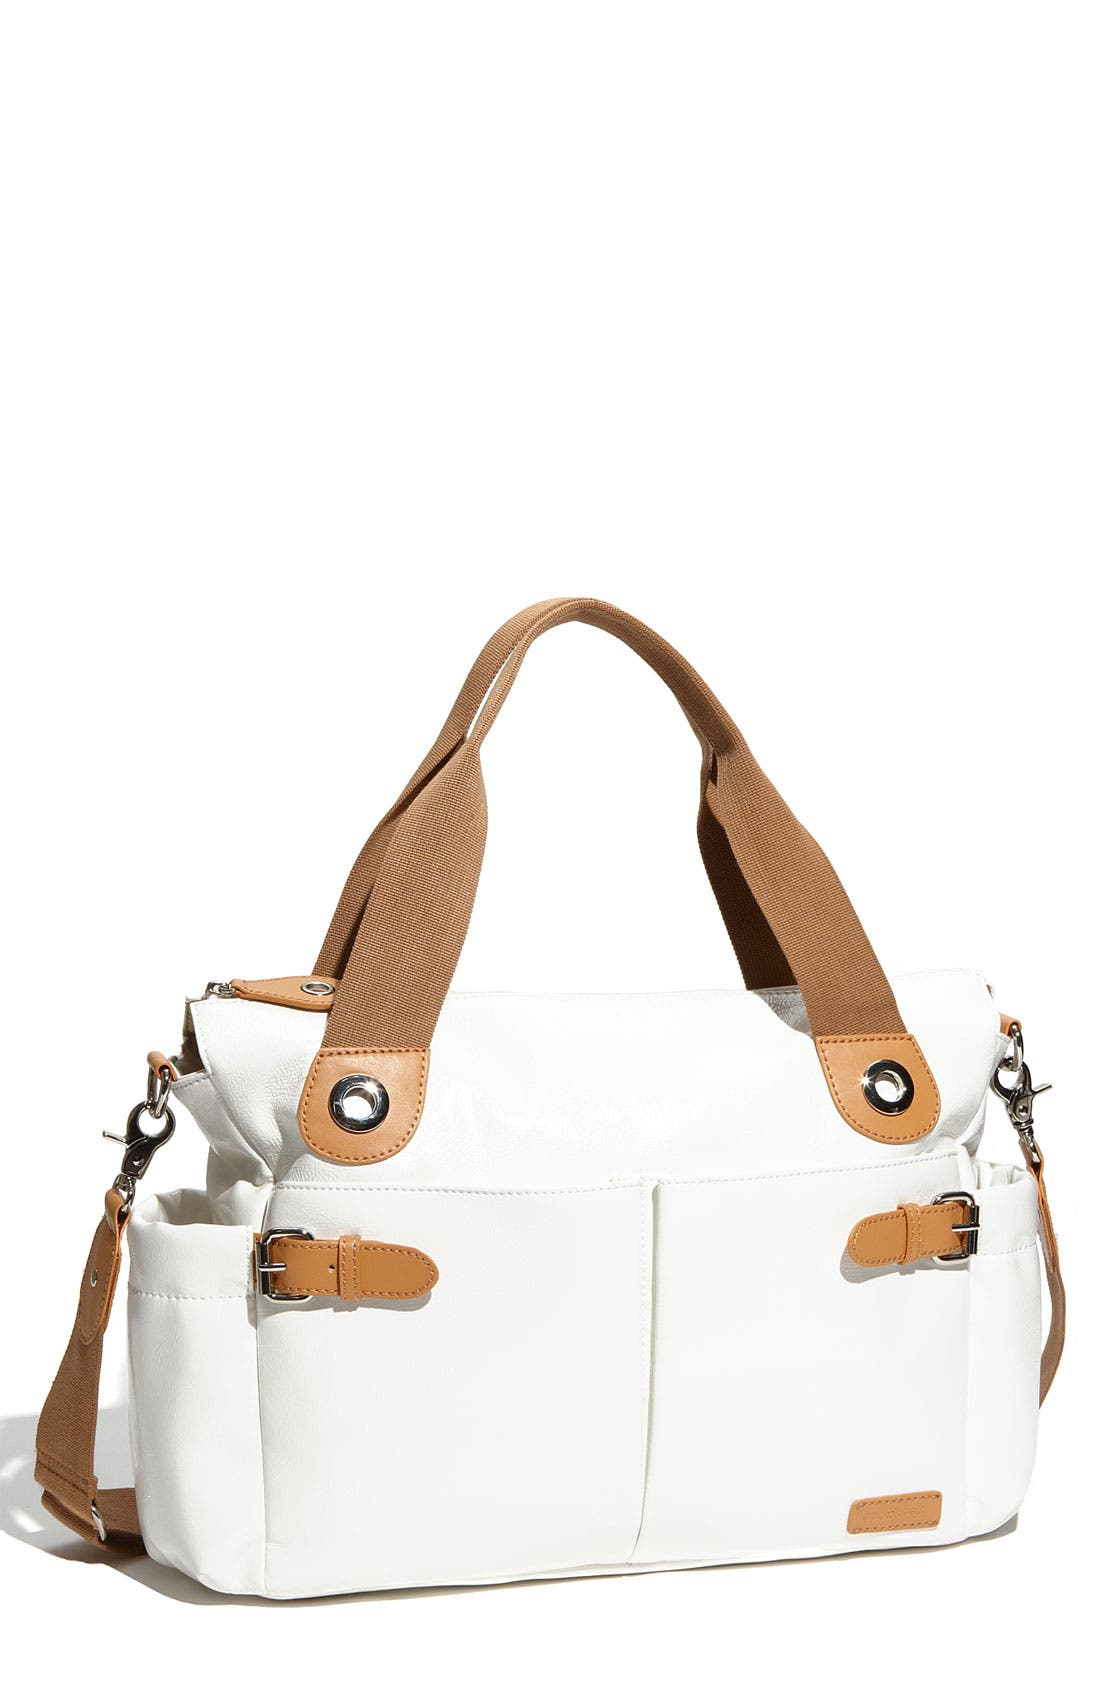 Main Image - Storksak 'Kate' Patent Diaper Bag